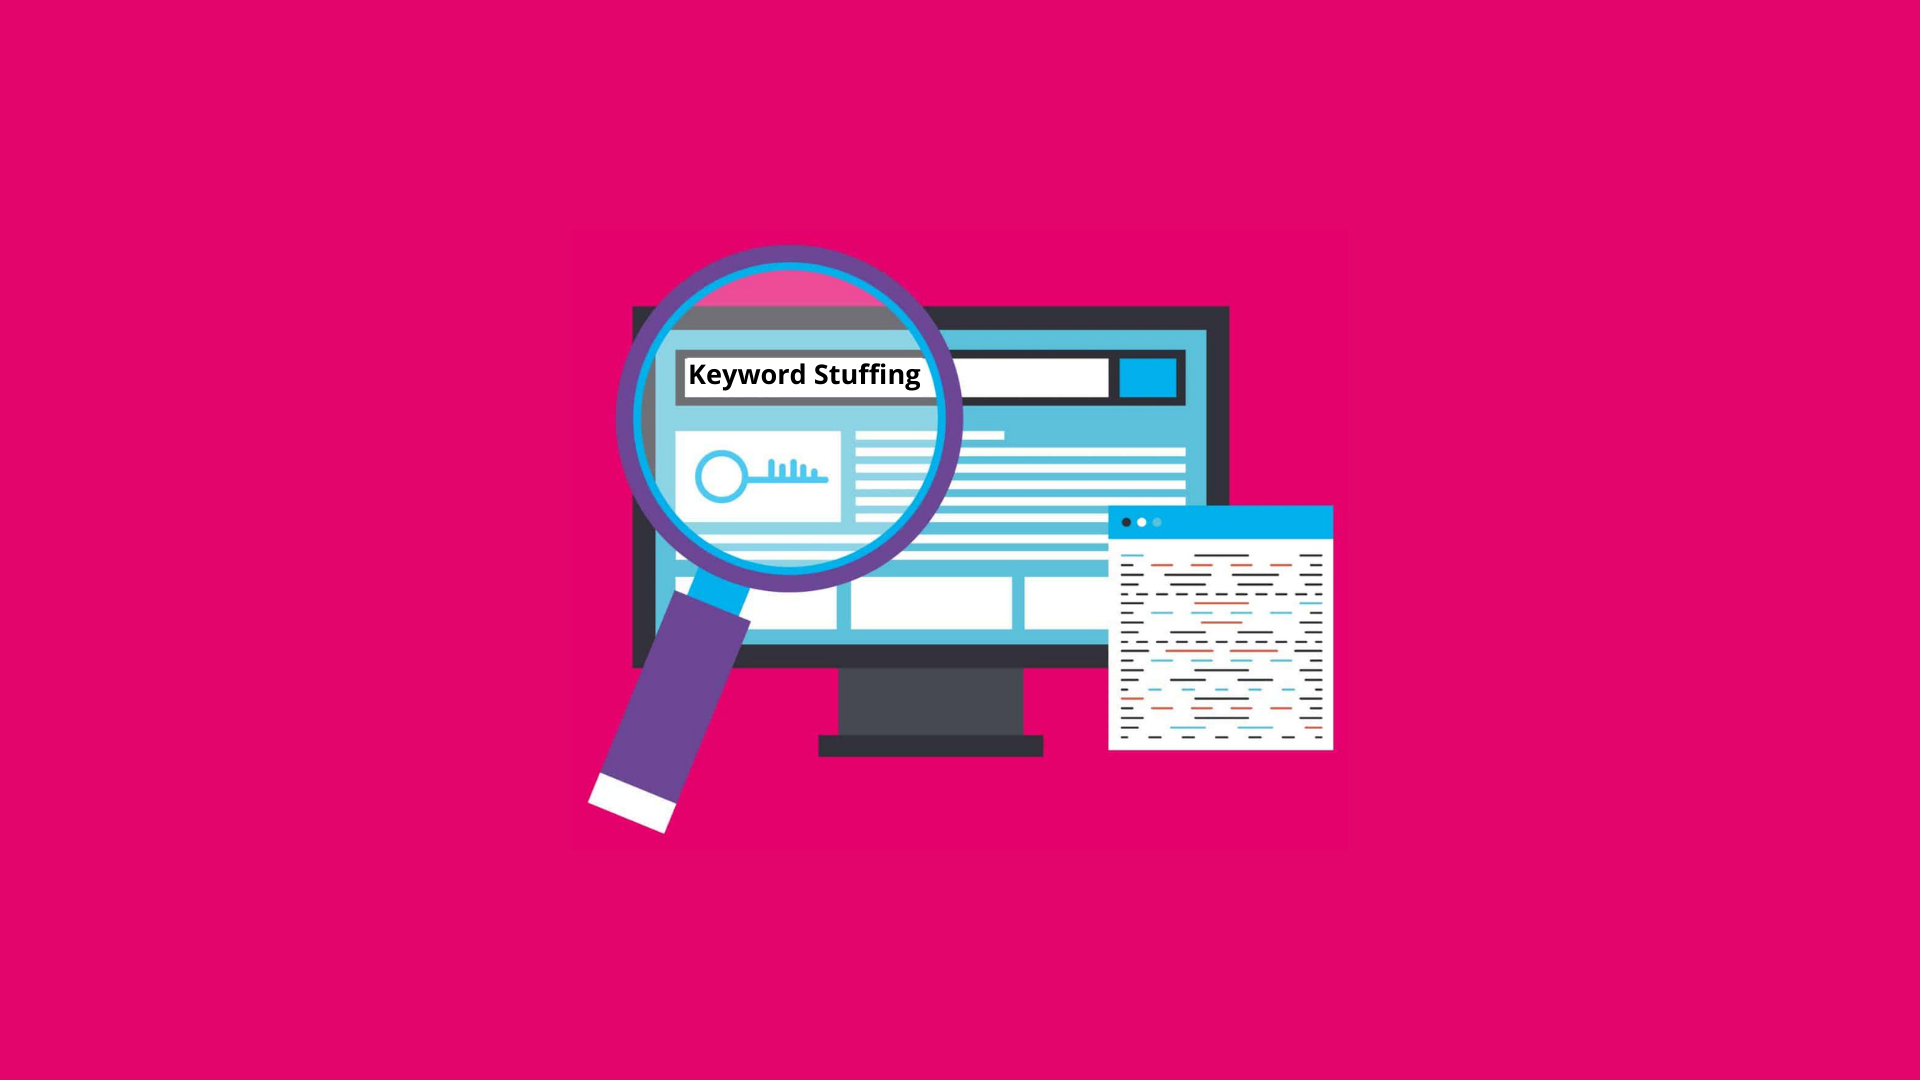 What Is Keyword Stuffing?